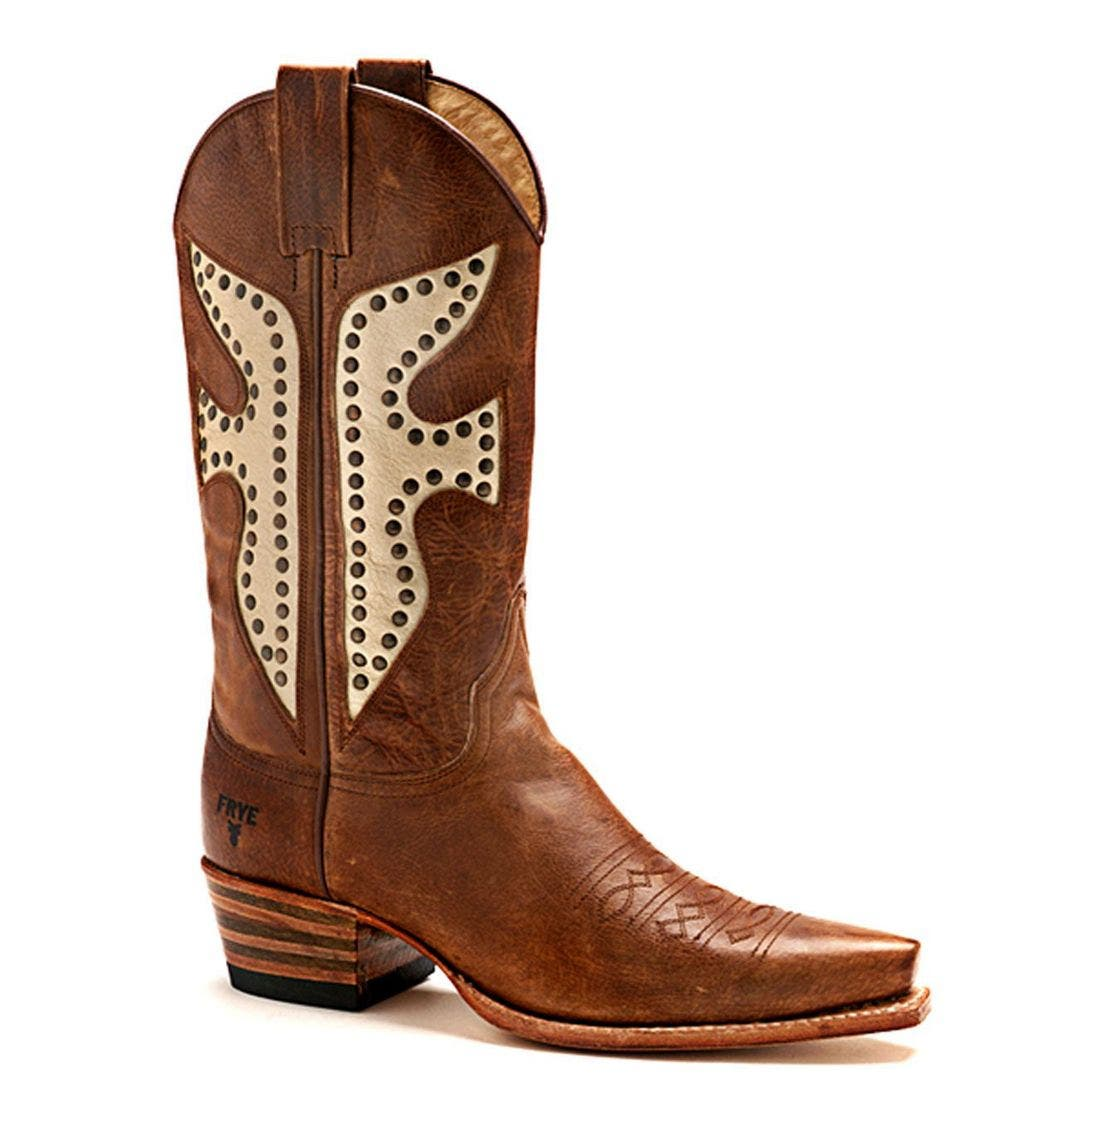 Alternate Image 1 Selected - Frye 'Daisy Duke' Studded Boot